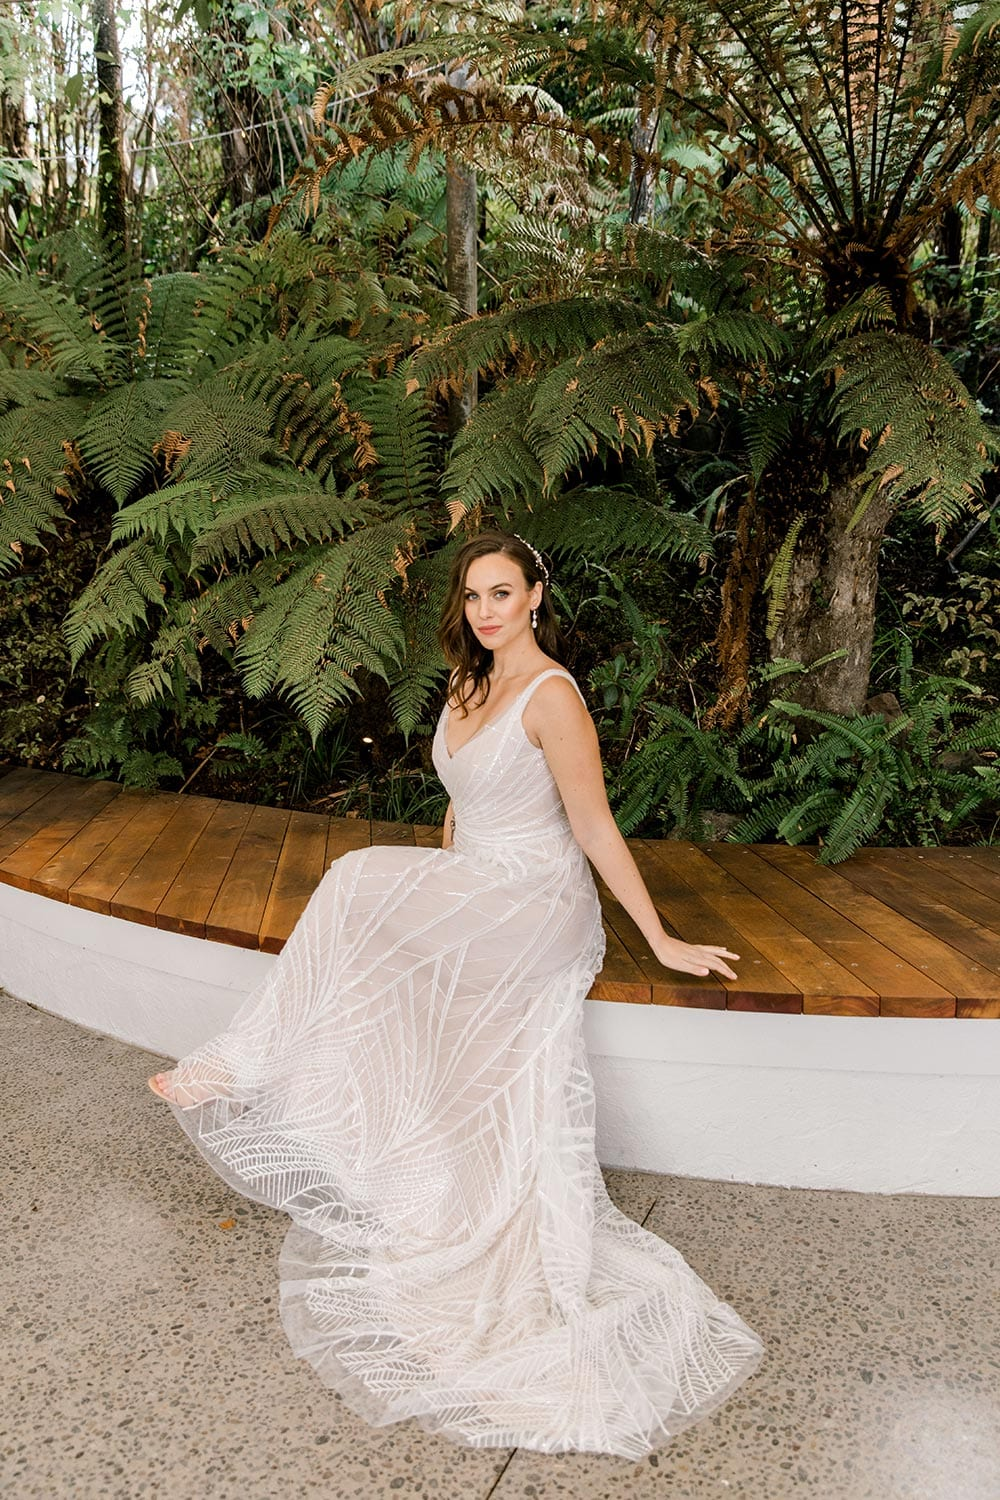 Amber Wedding Dress from Vinka Design. Beautiful wedding dress with V-neckline bodice & V-shaped back on a soft blush/light nude base. Rich beading sculpts the waist & relaxed-fit skirt falls to a train. Model sitting, dress flowing to the ground. Photographed at Tui Hills by Emmaline Photography.